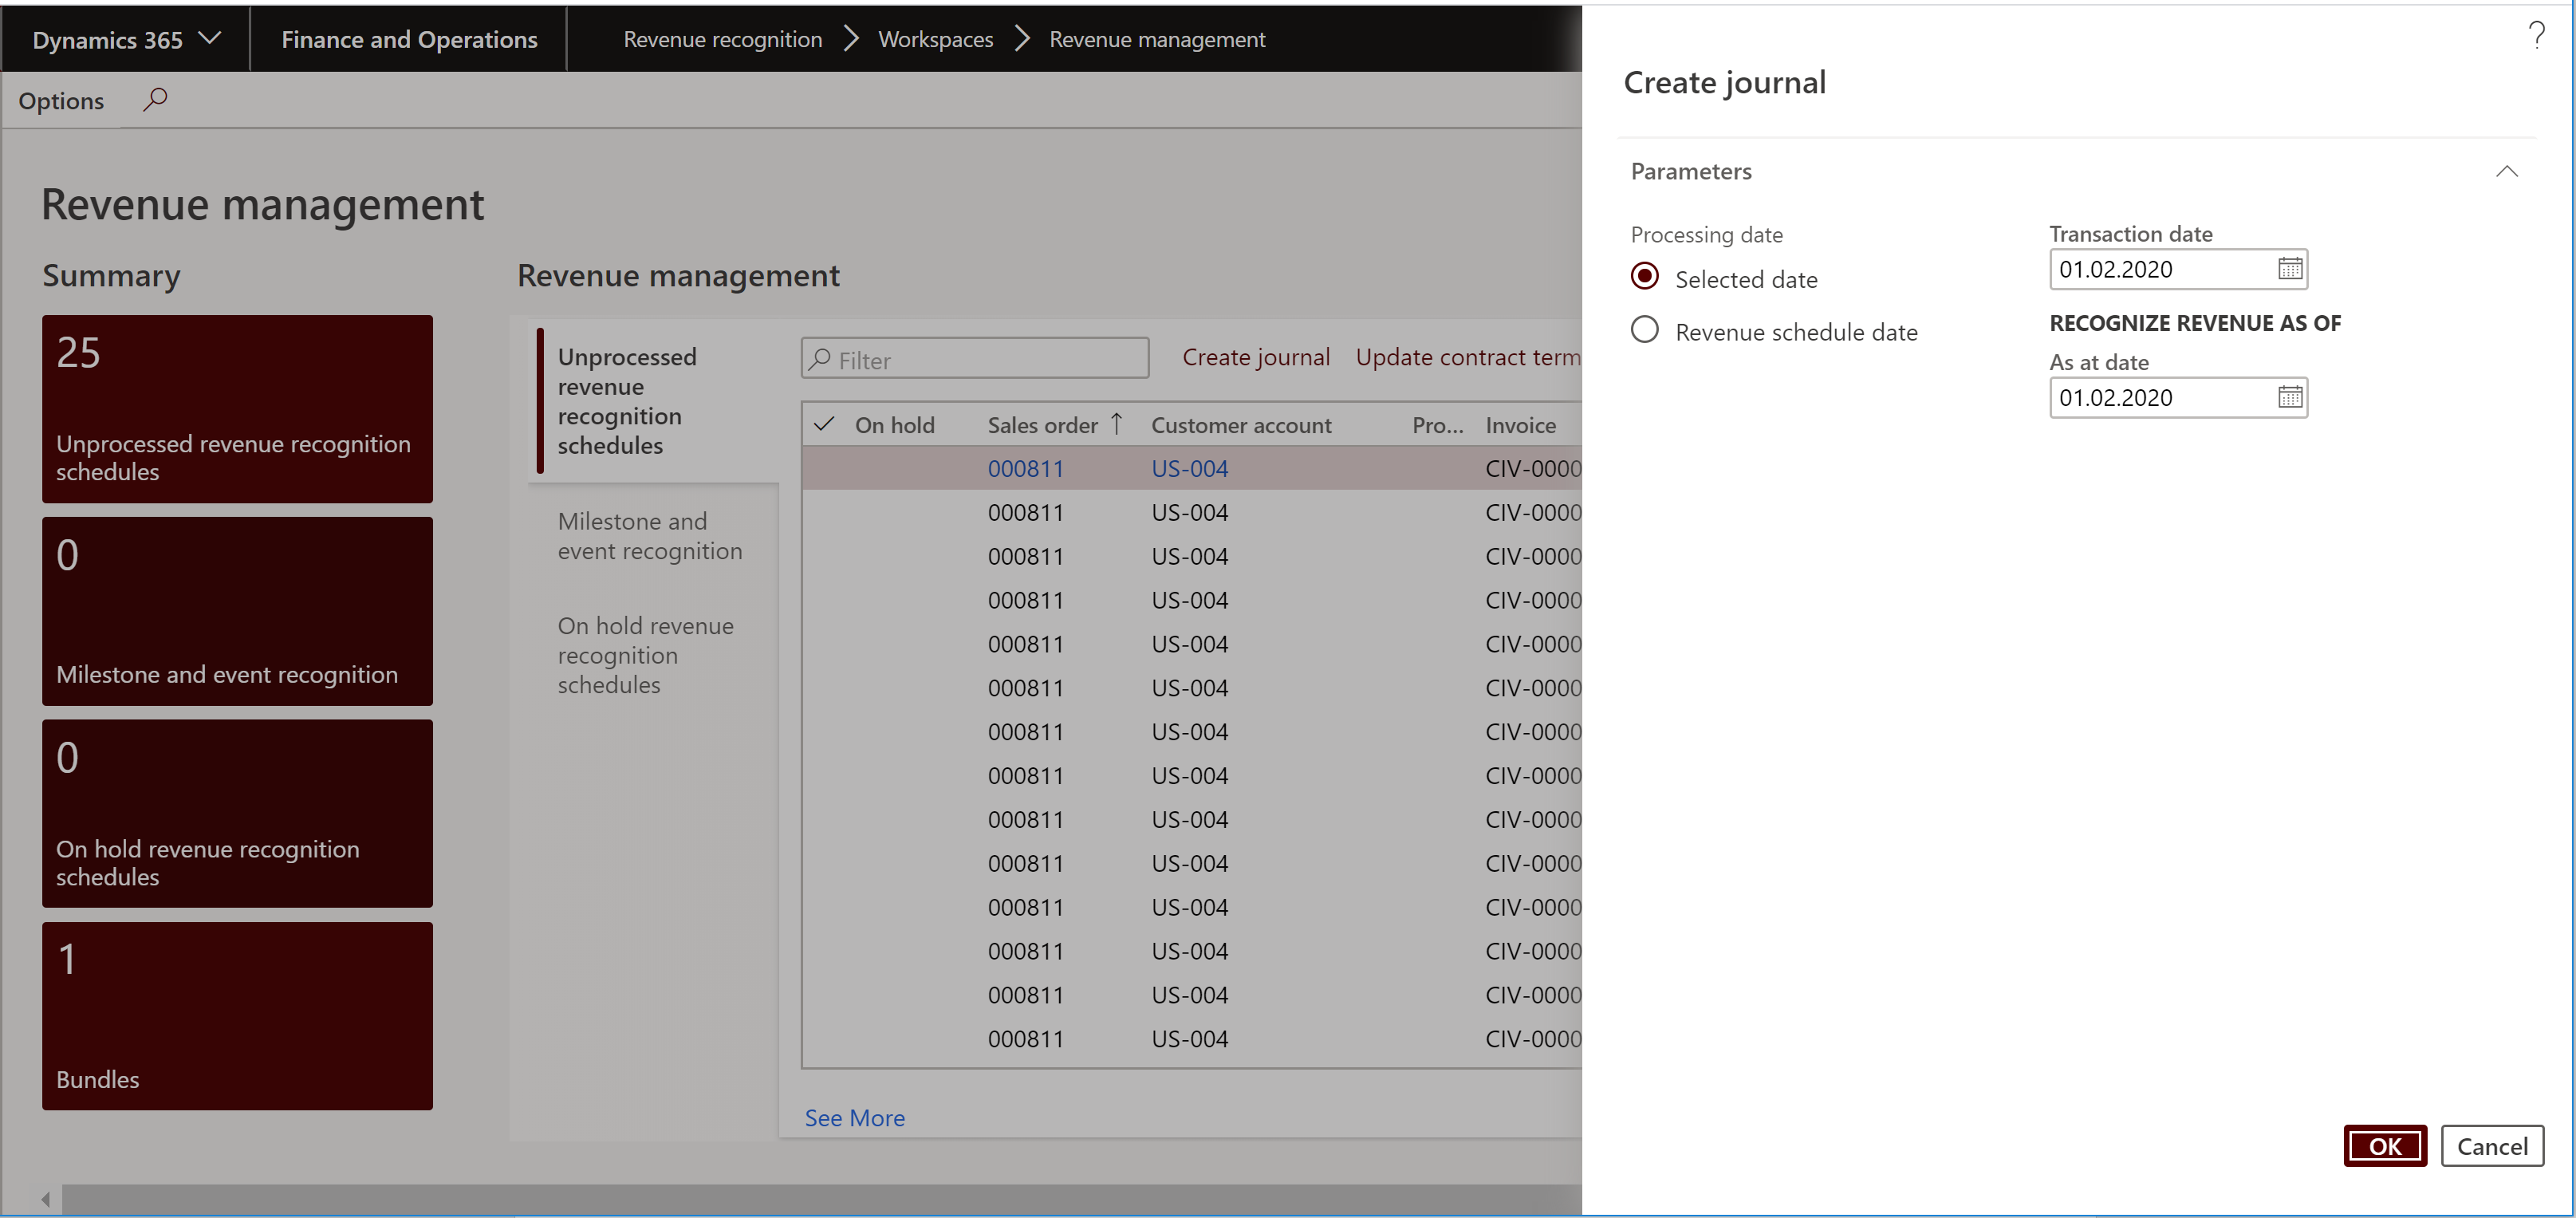 Revenue recognition workspace: Create journal